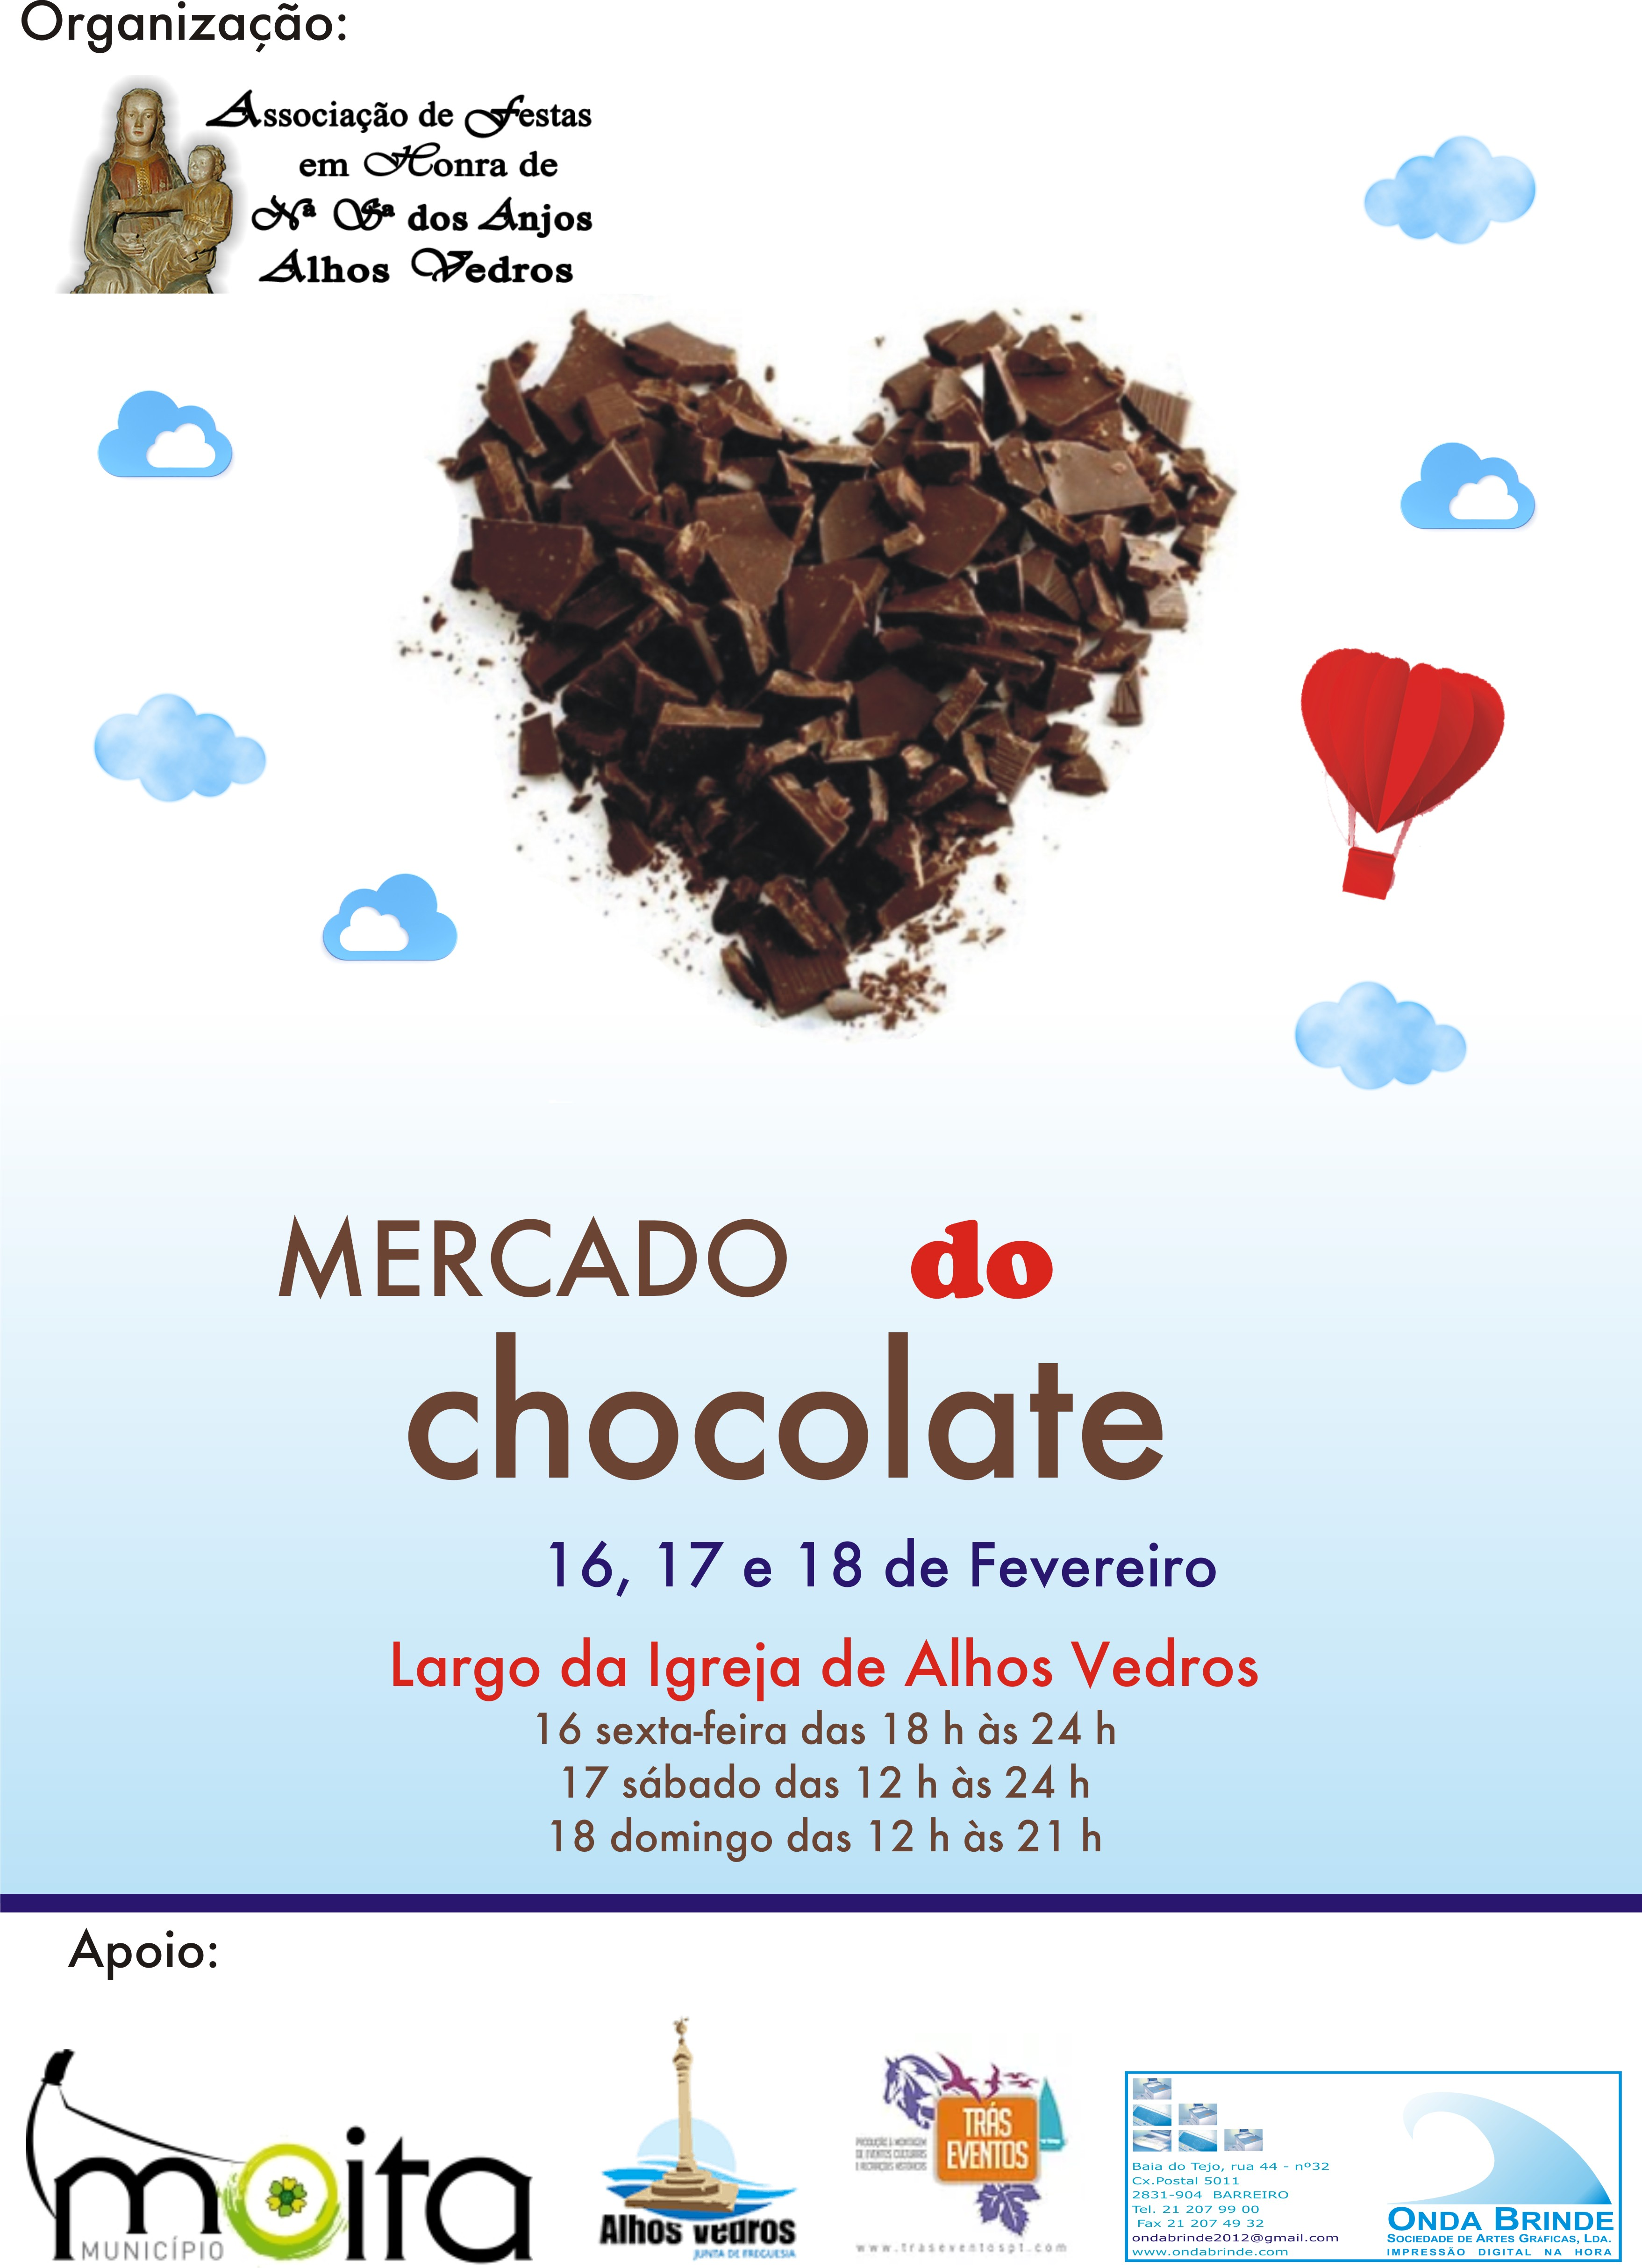 Mercado do Chocolate Alhos Vedros